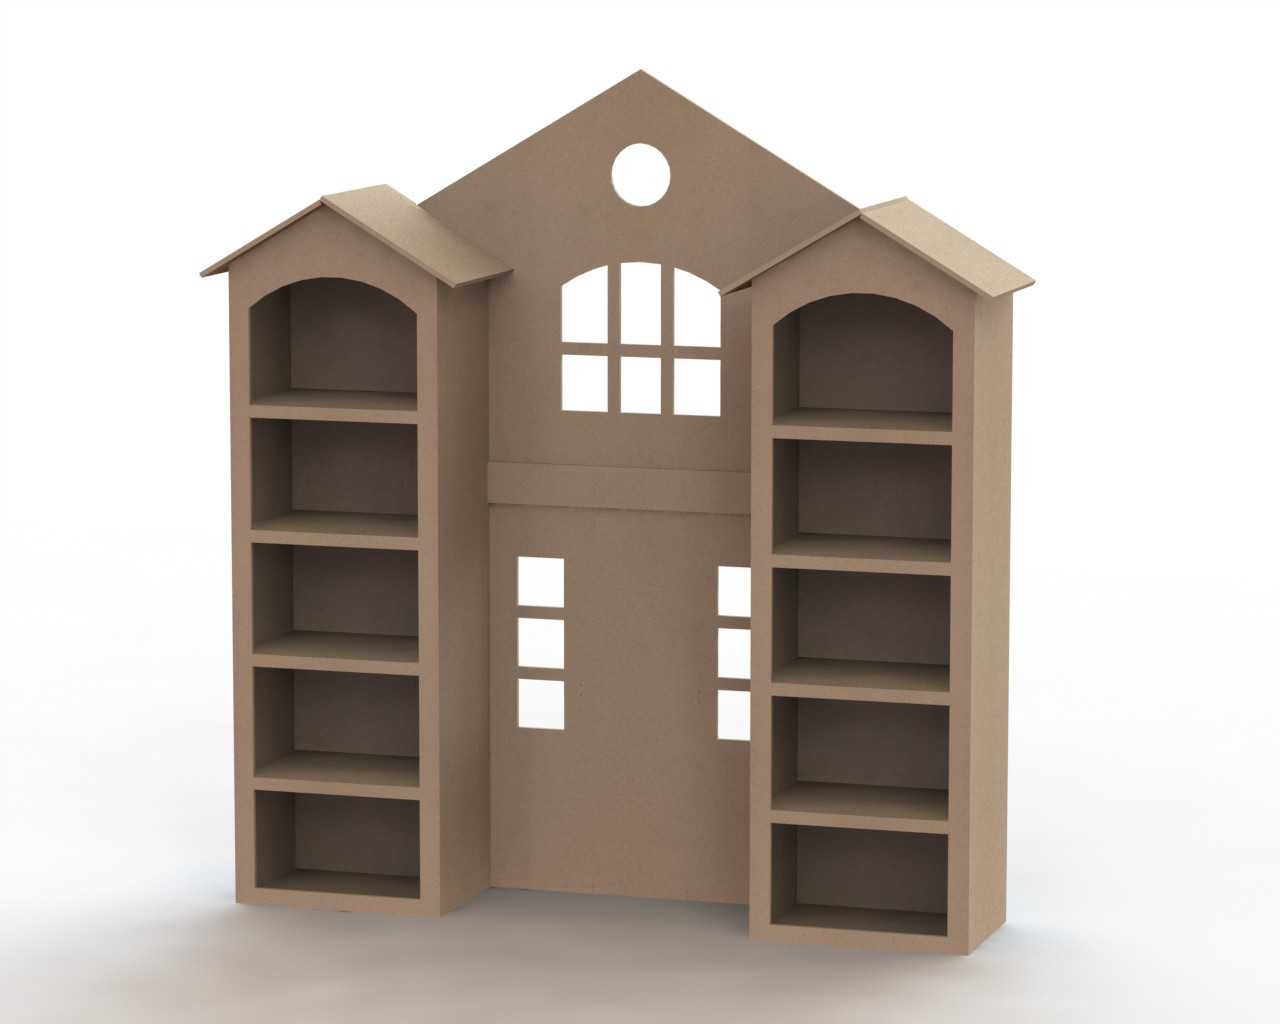 Furniture For Dollhouse Wooden Shelf Laser Cutting Template Free Vector